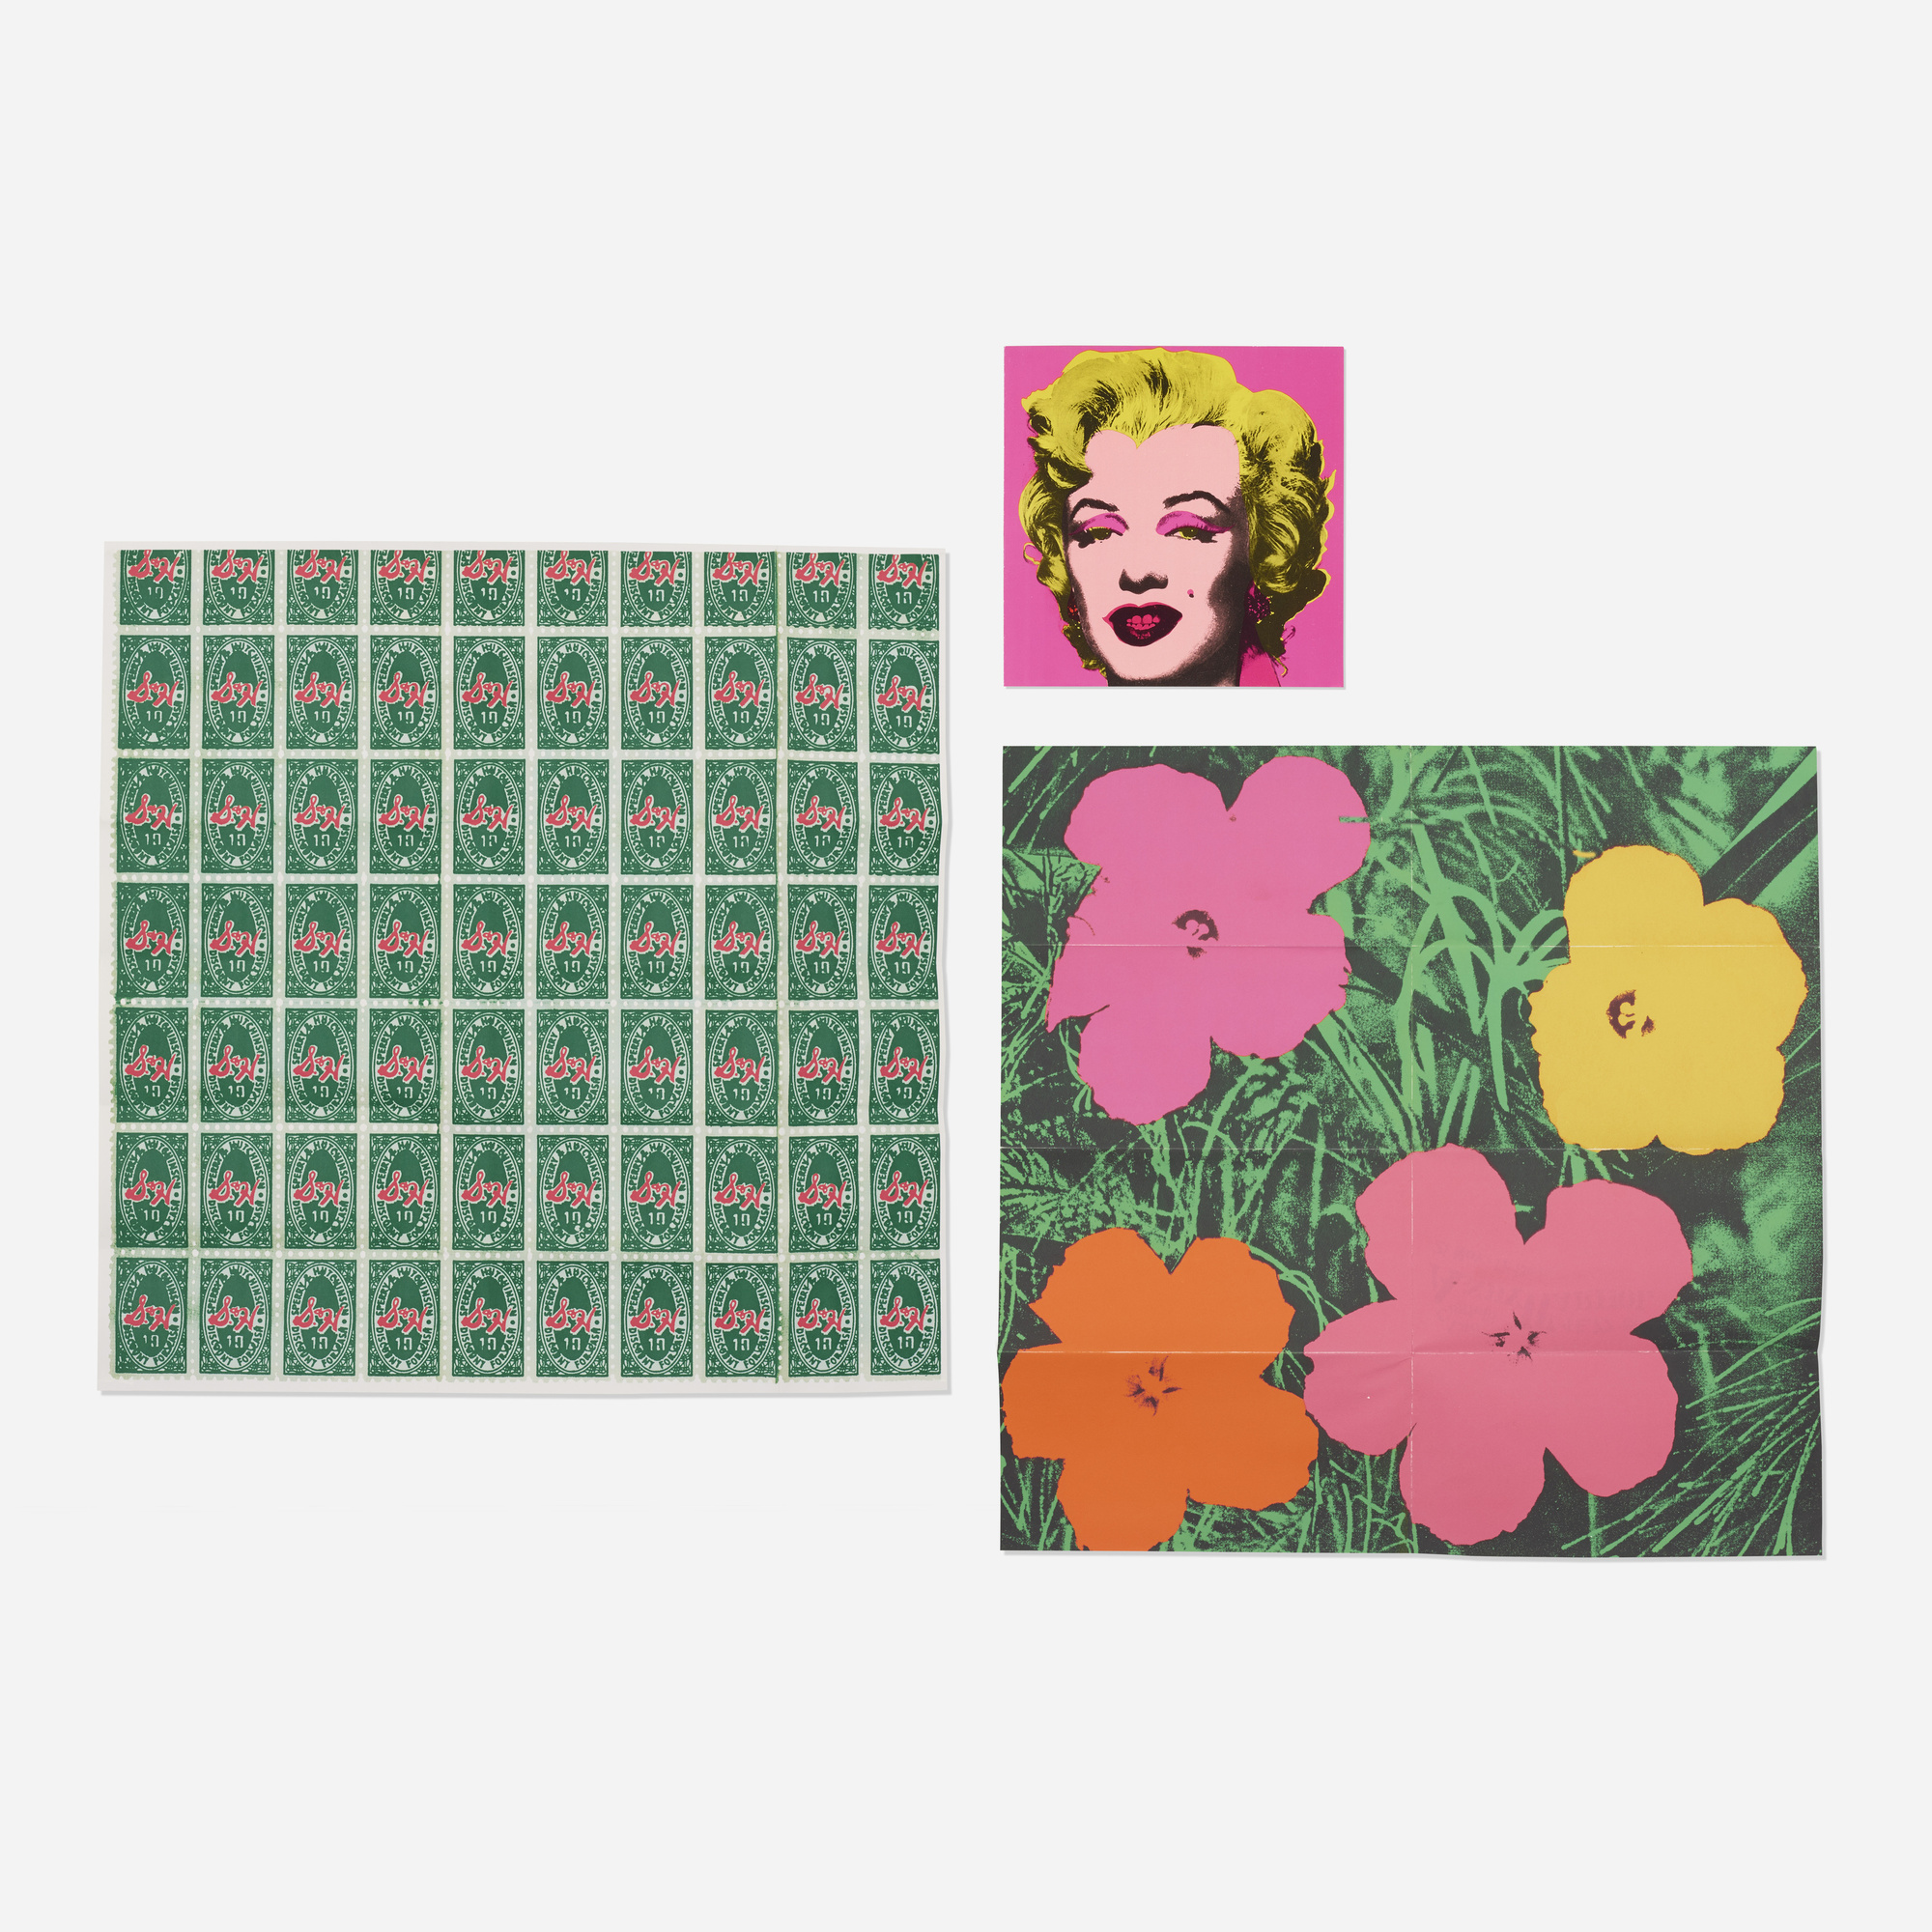 130: Andy Warhol / Marilyn, Flowers and S&H Green Stamps (three mailers) (1 of 3)